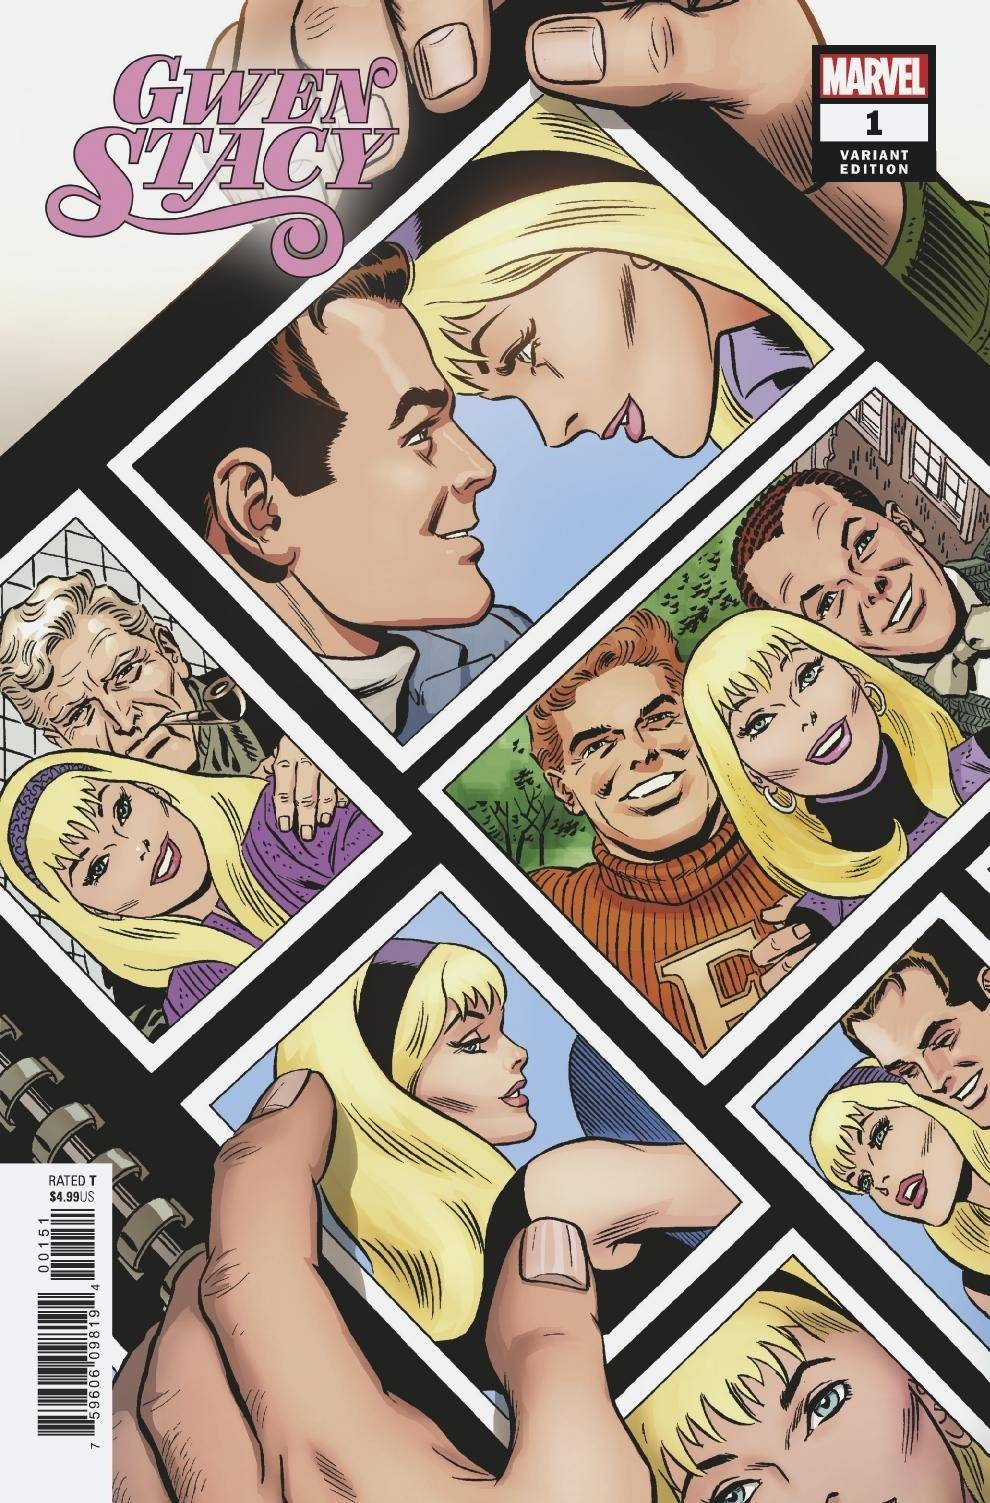 02/12/2020 GWEN STACY #1 (OF 5) 1:100 VARIANT